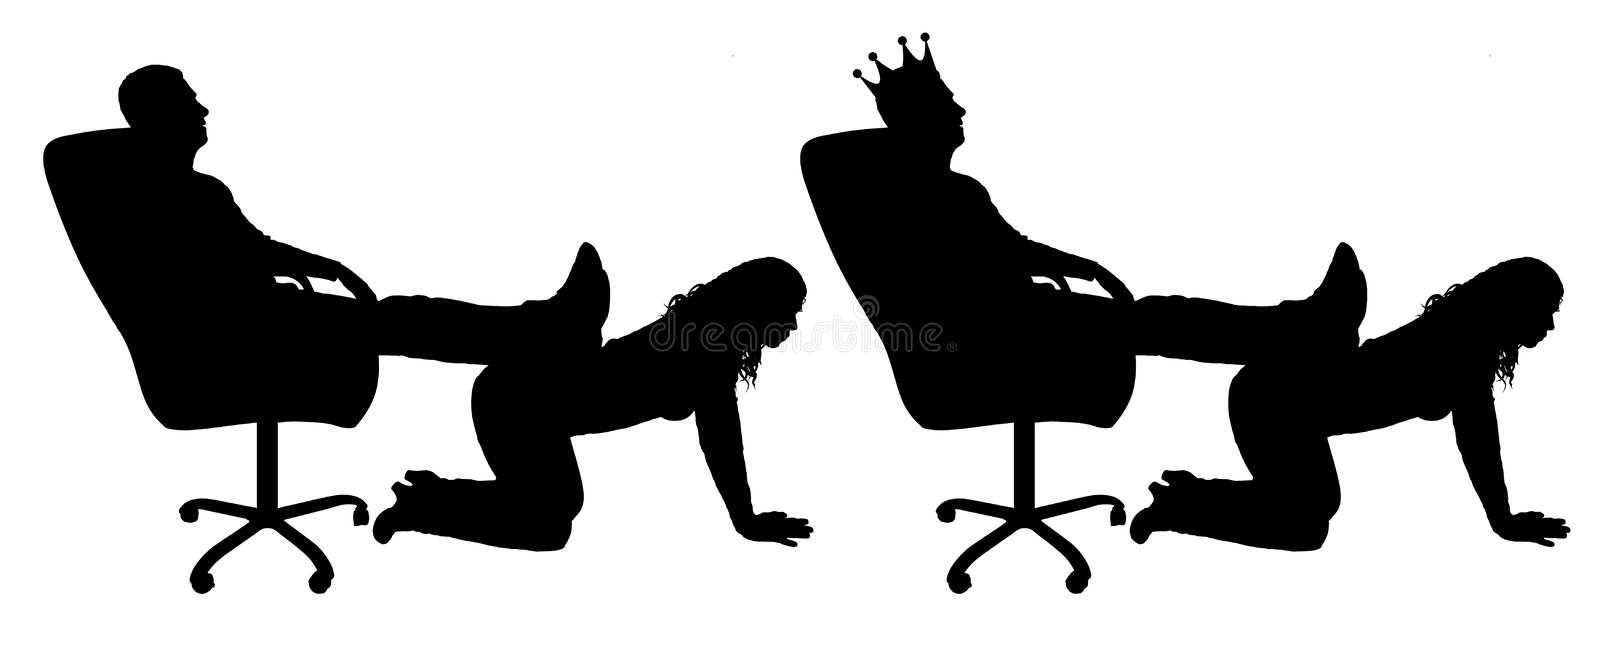 Silhouette of a selfish man with a crown on his head sitting in a chair, threw back his legs on the woman`s back stock illustration